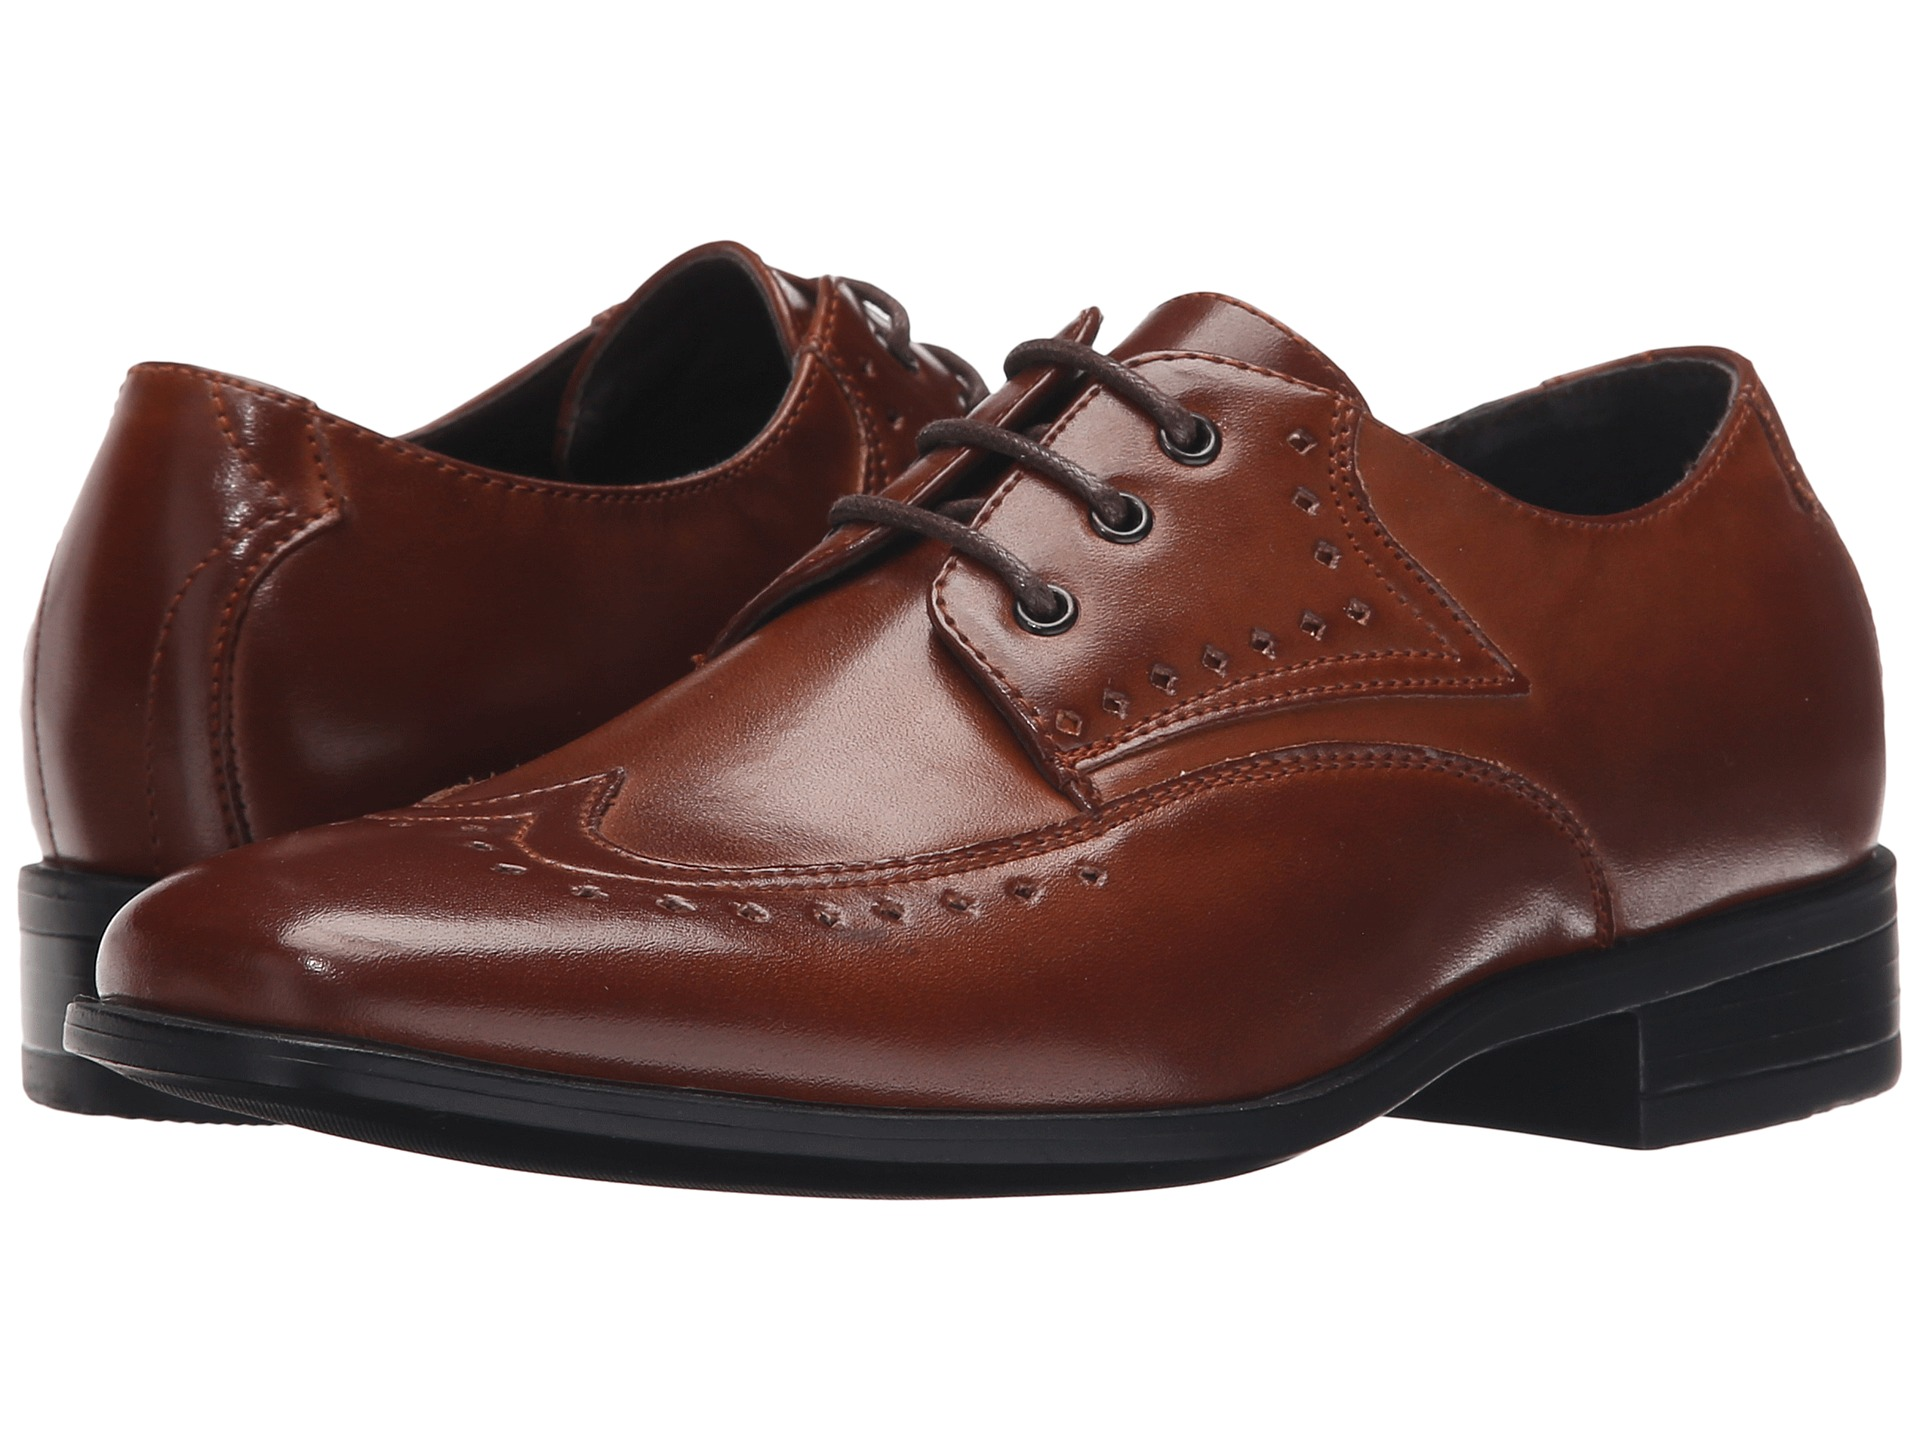 Stacy Adams Shoes: All the shoes to keep you walking in comfort and style at antminekraft85.tk Your Online Clothing & Shoes Store! Get 5% in rewards with Club O! Coupon Activated! Skip to main content FREE Shipping & Easy Returns* Kids Stacy Adams Boys Somerton Leather Lace Up Oxfords.